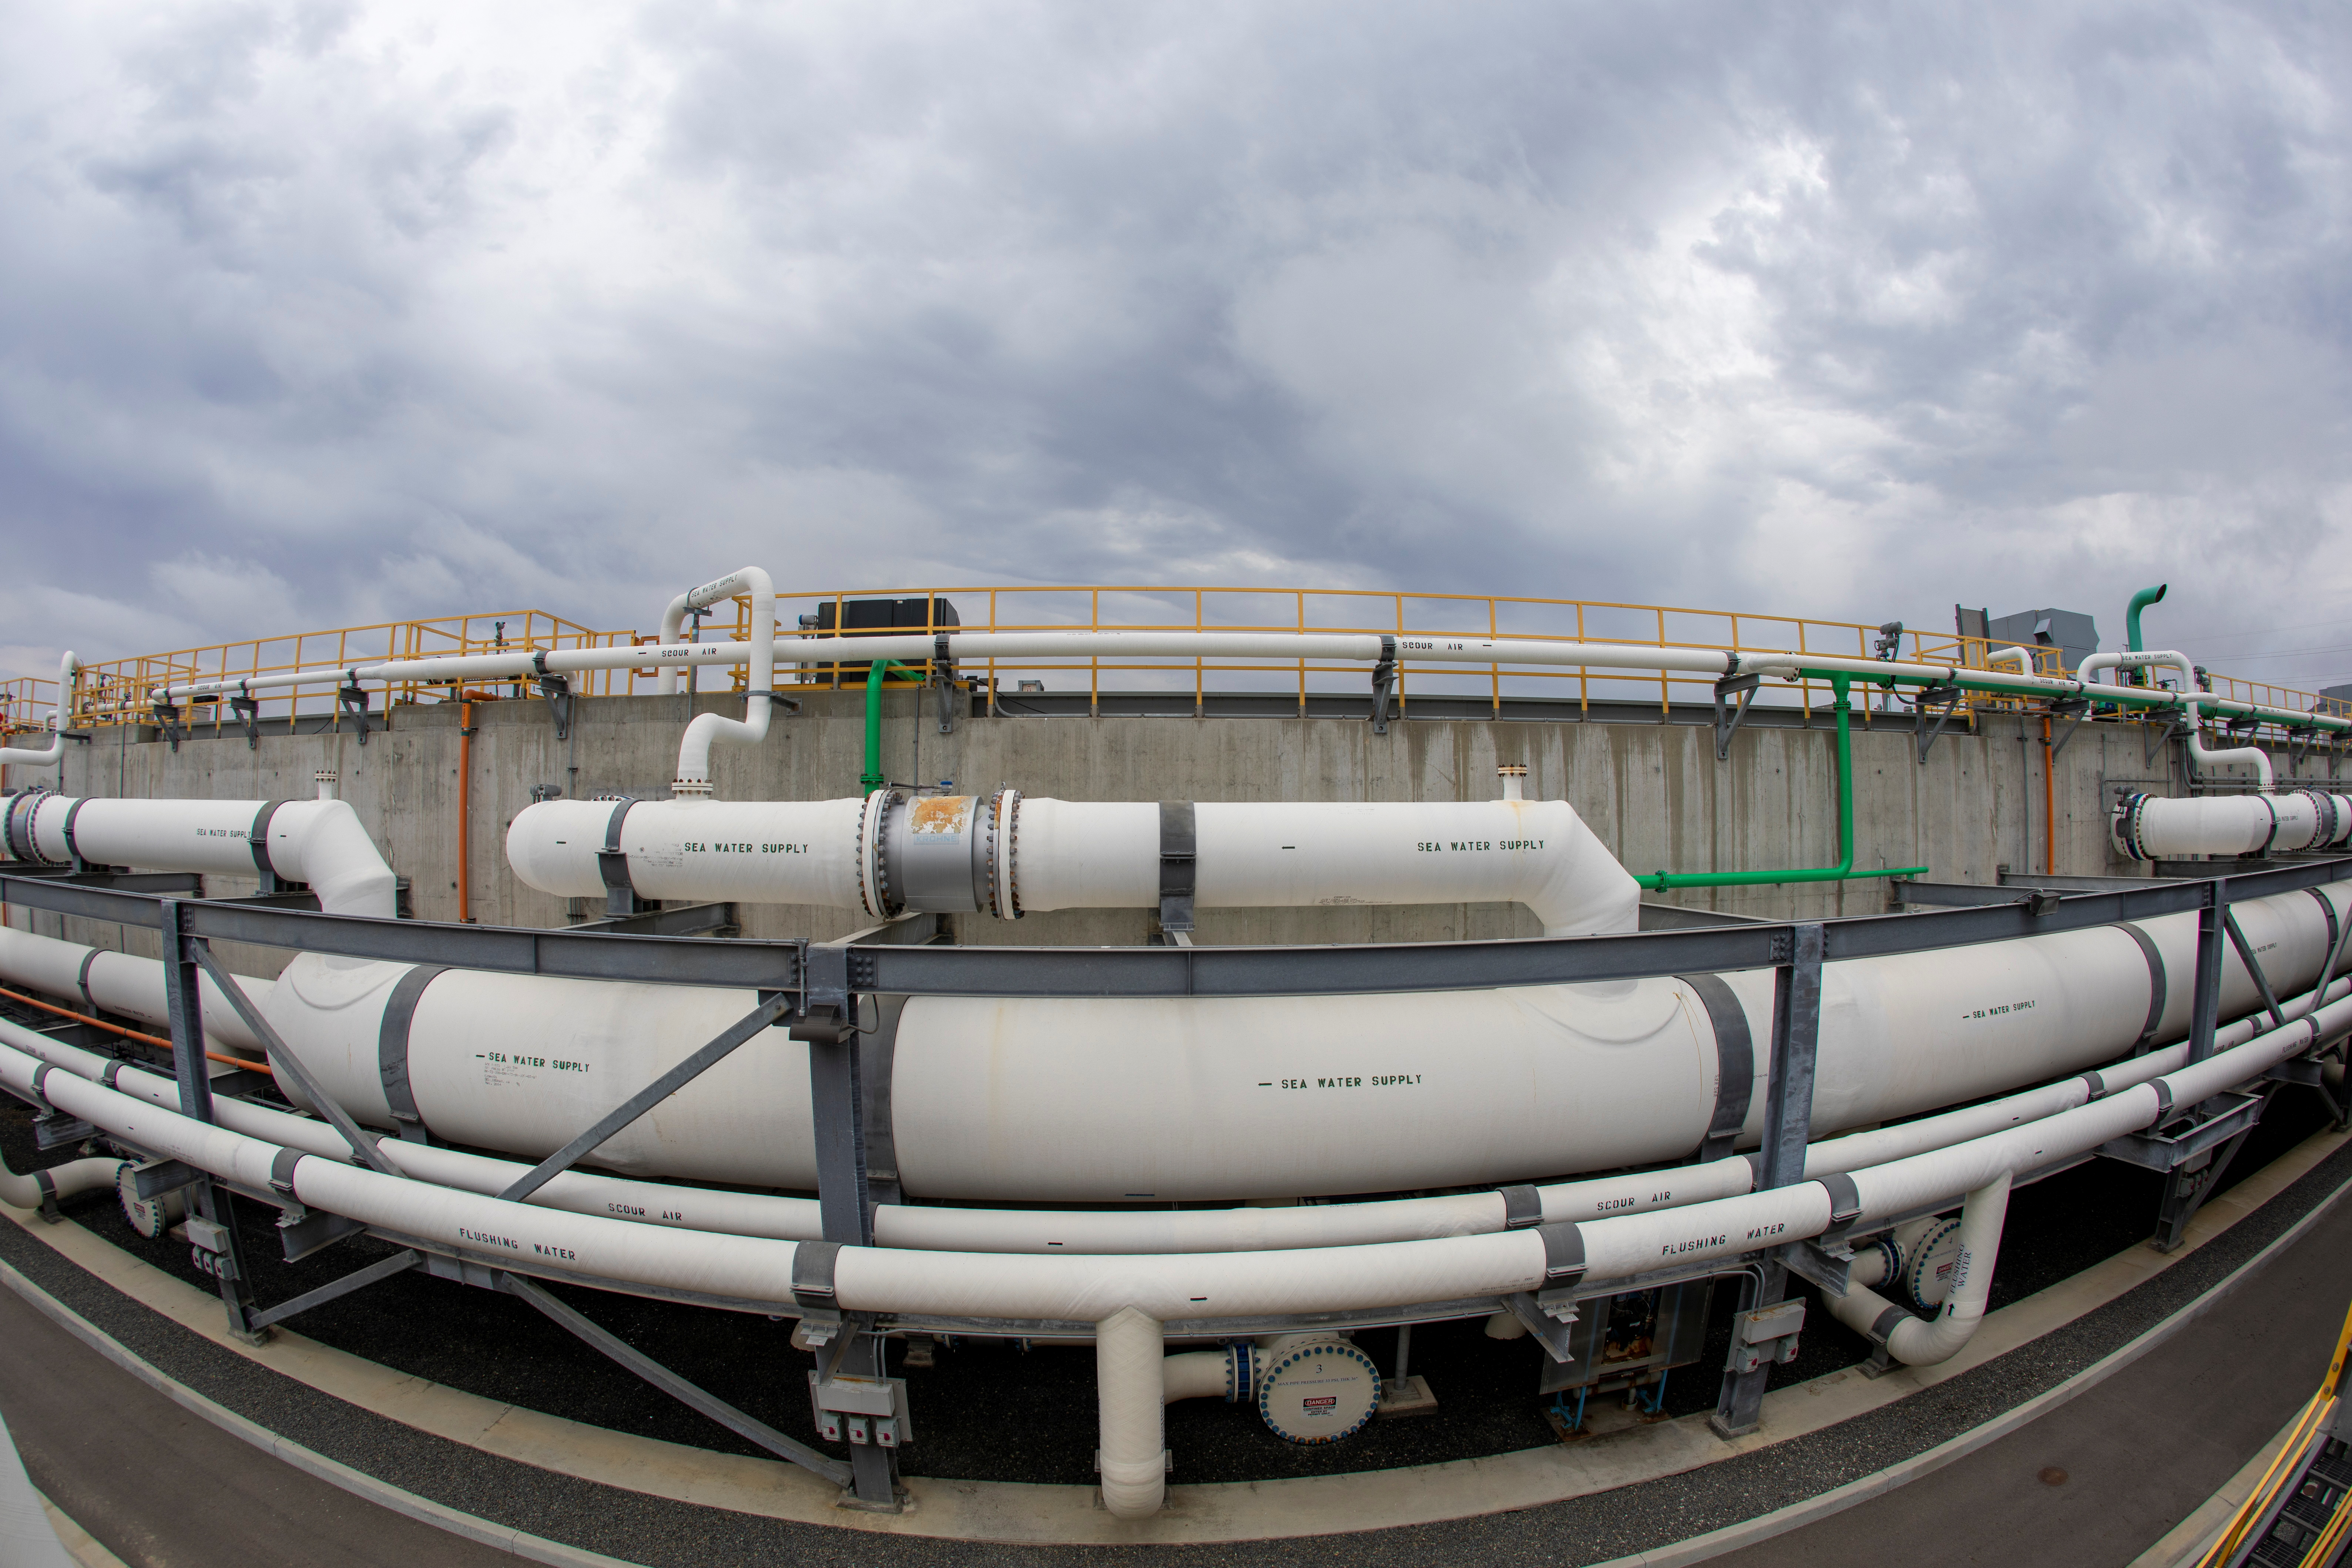 Incoming sea water pipes are shown at the  Poseidon Water desalination plant in Carlsbad, California, U.S., June 22, 2021. REUTERS/Mike Blake